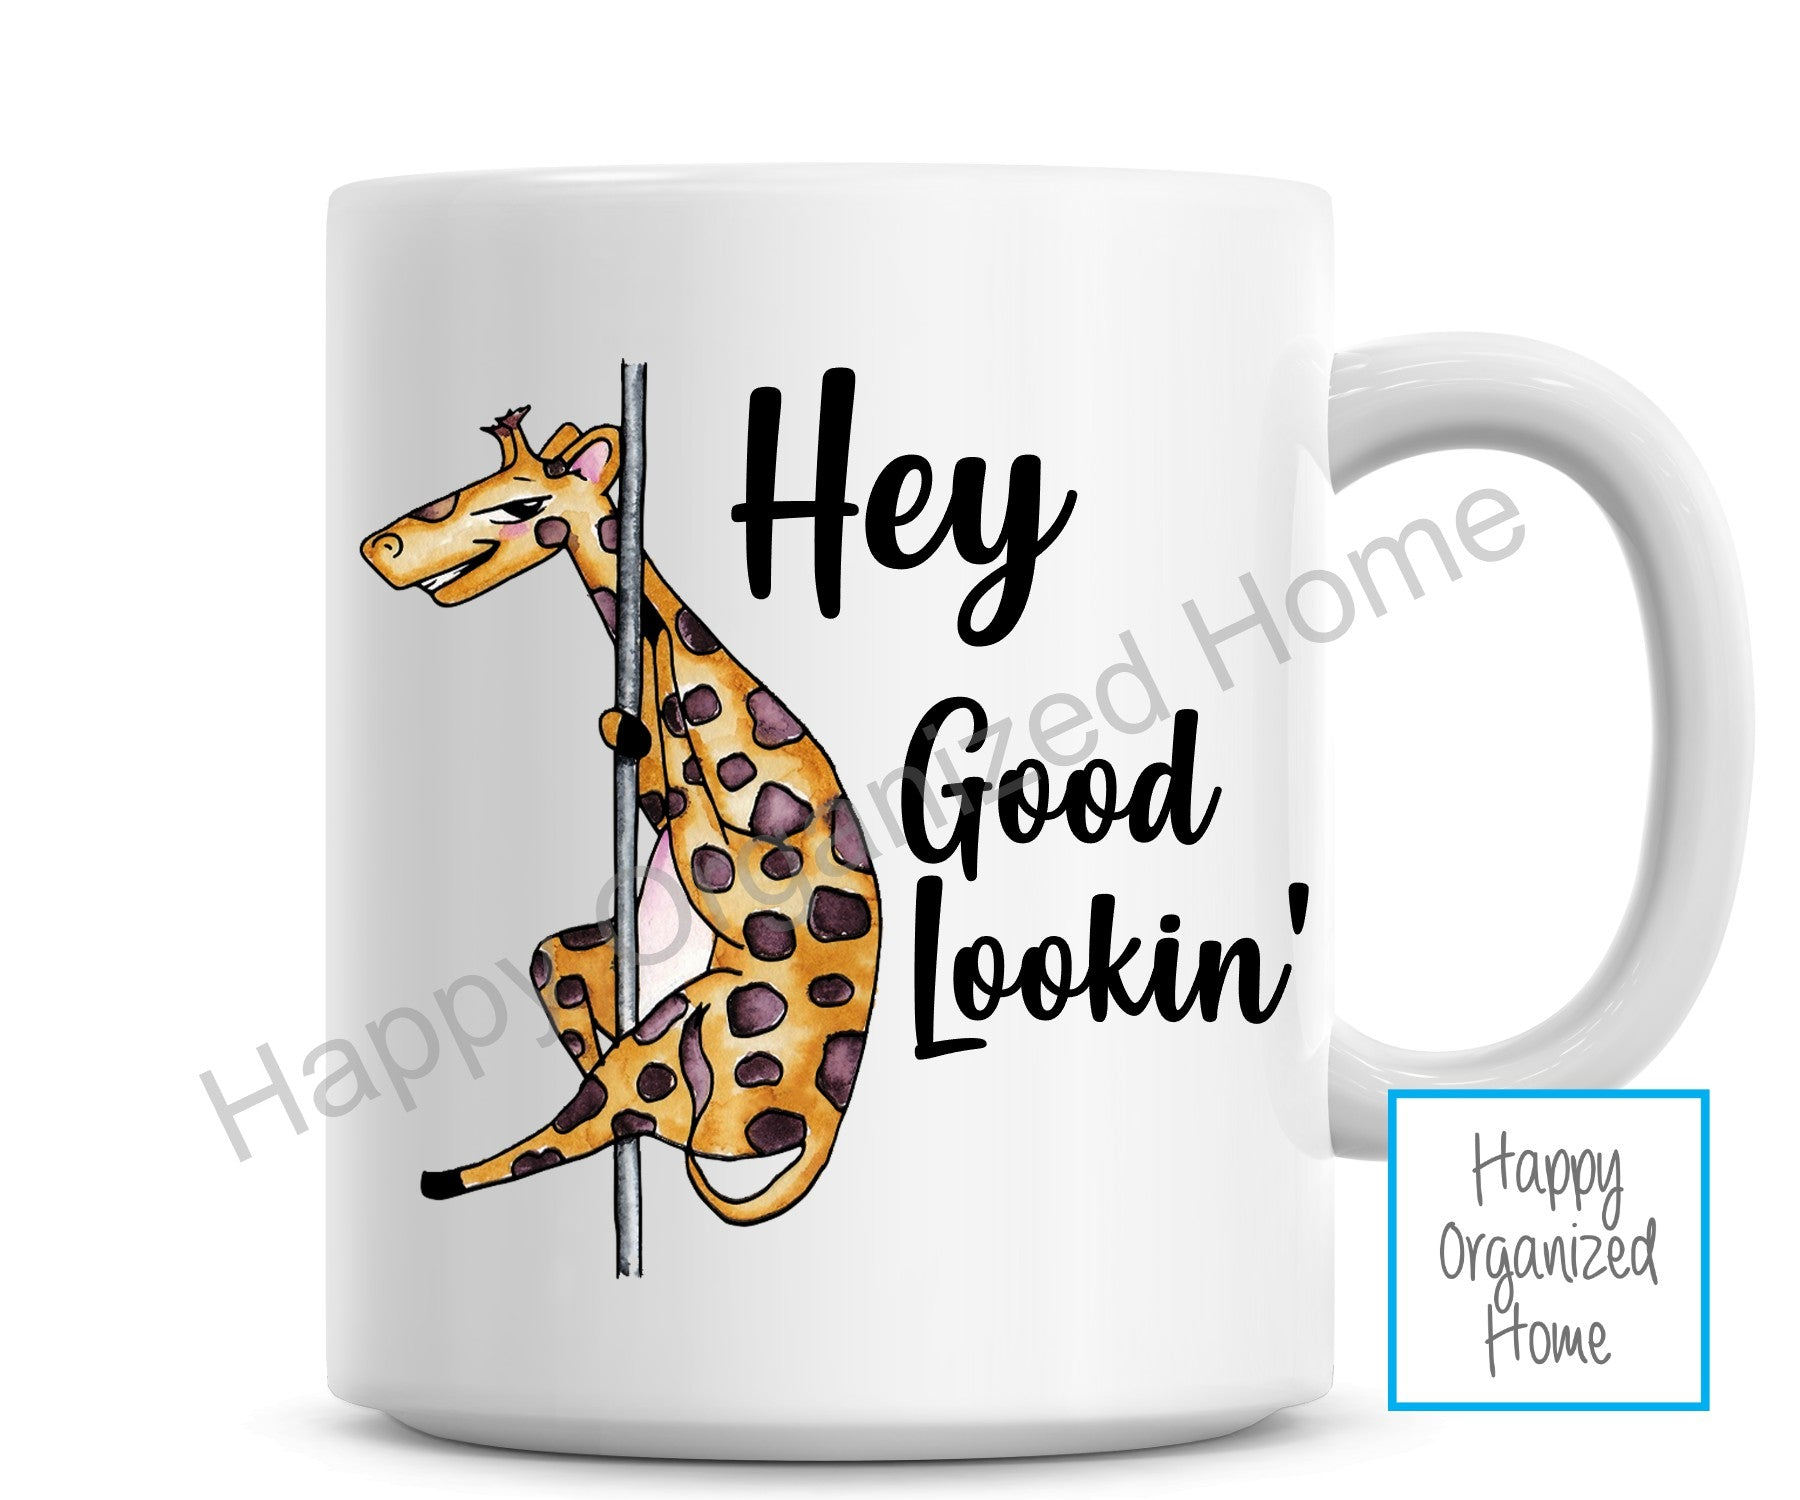 Hey Good Lookin' - mug